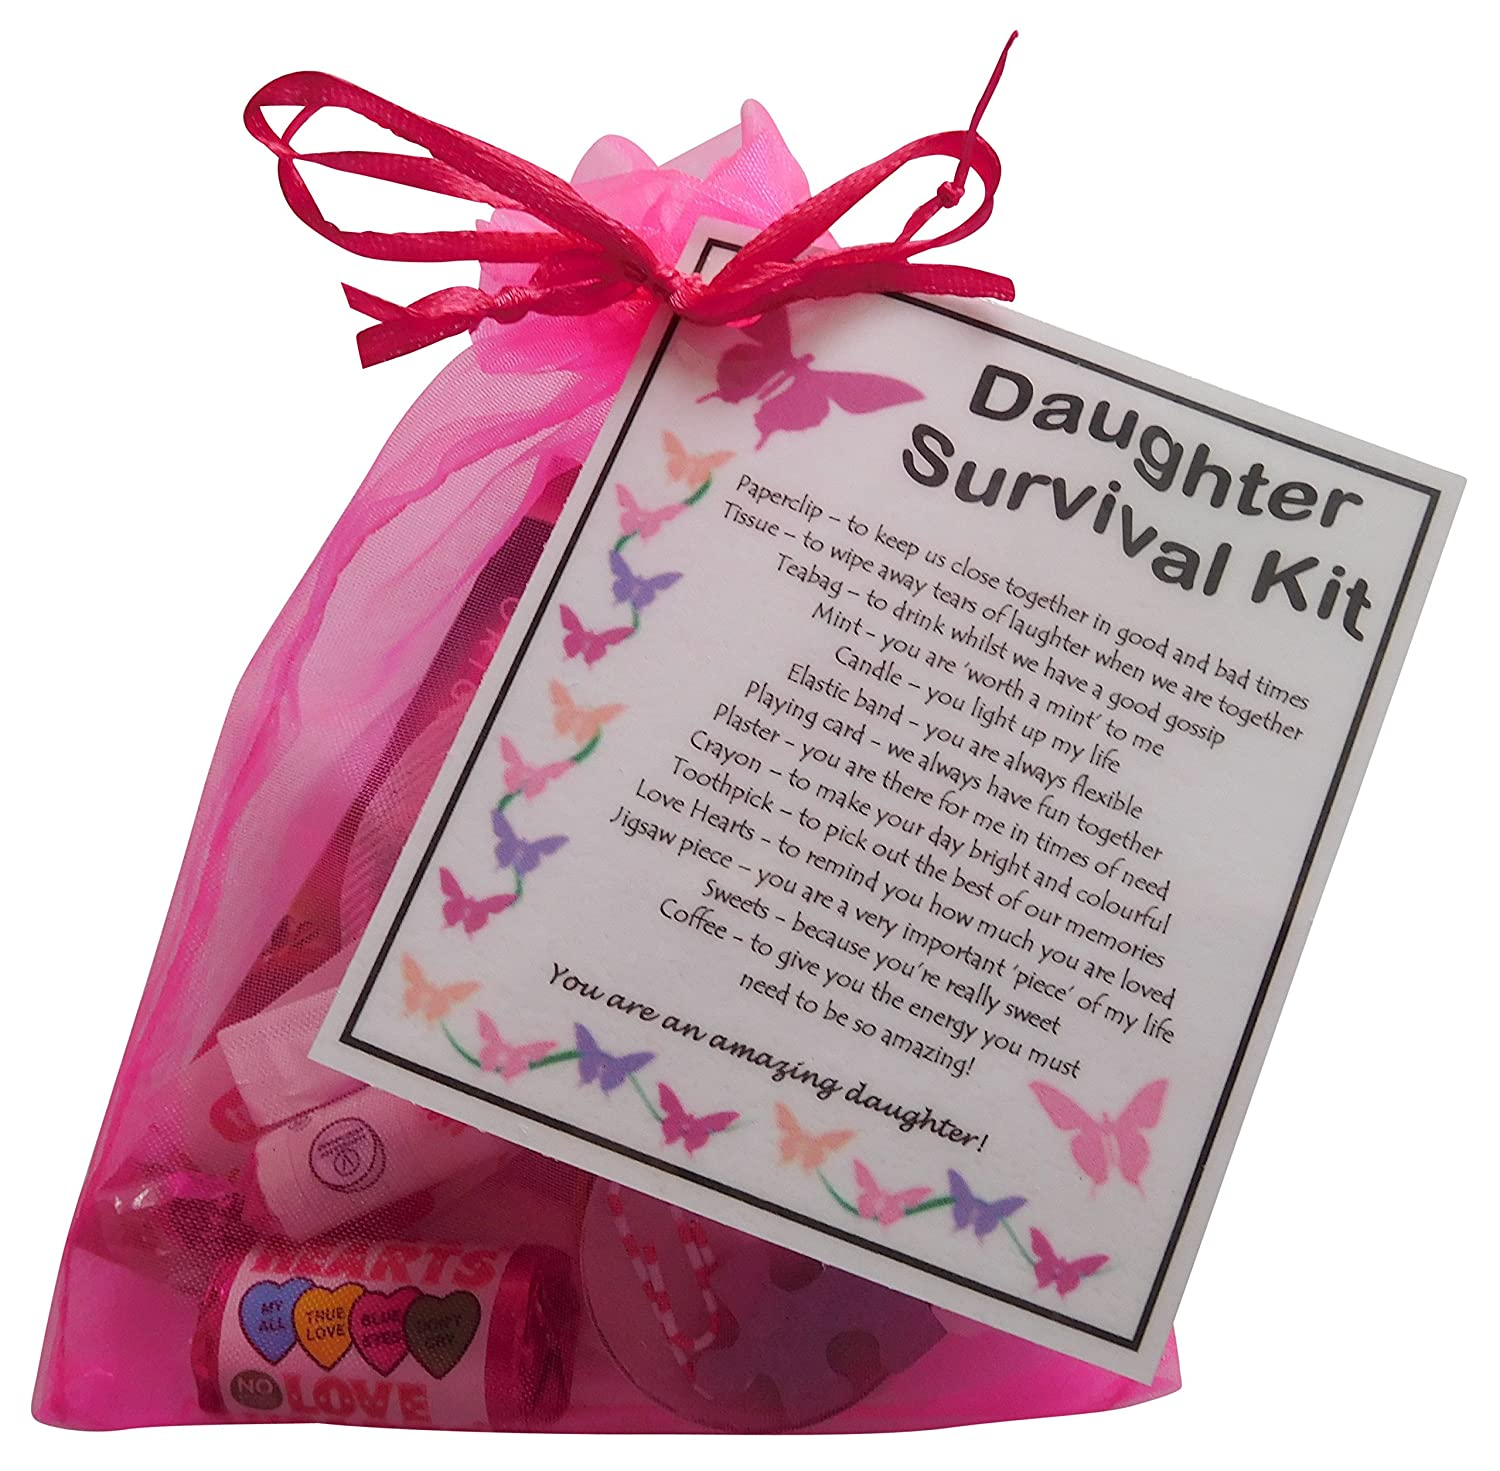 Daughter Survival Kit Gift Great Present For Birthday Christmas Or Just Because Amazonca Home Kitchen